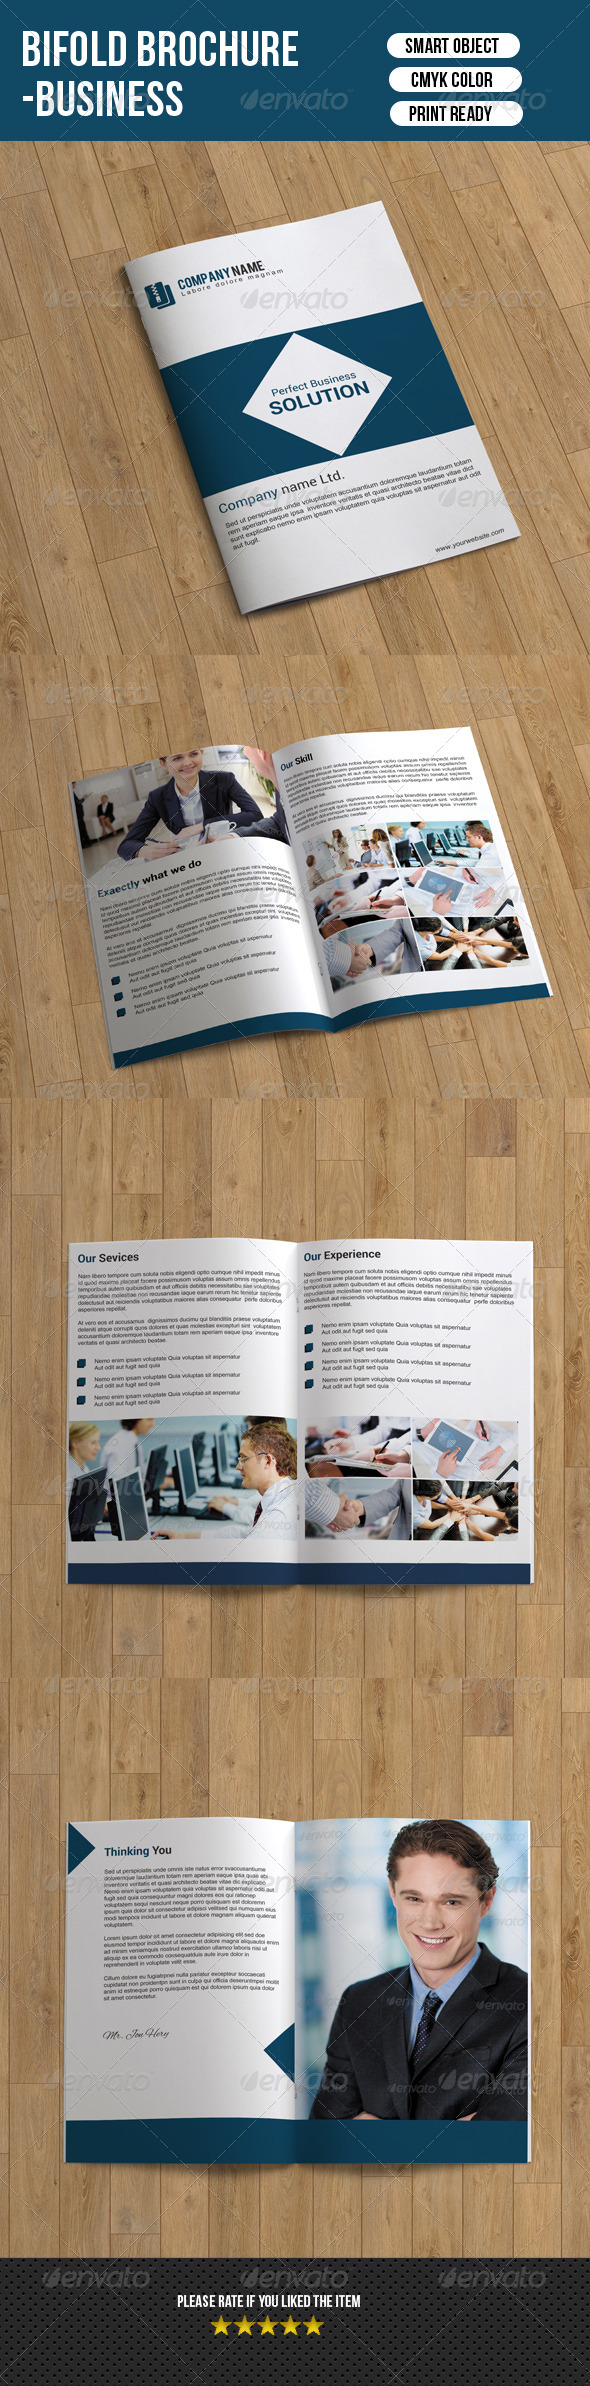 Business Brochure-8 Pages - Corporate Brochures